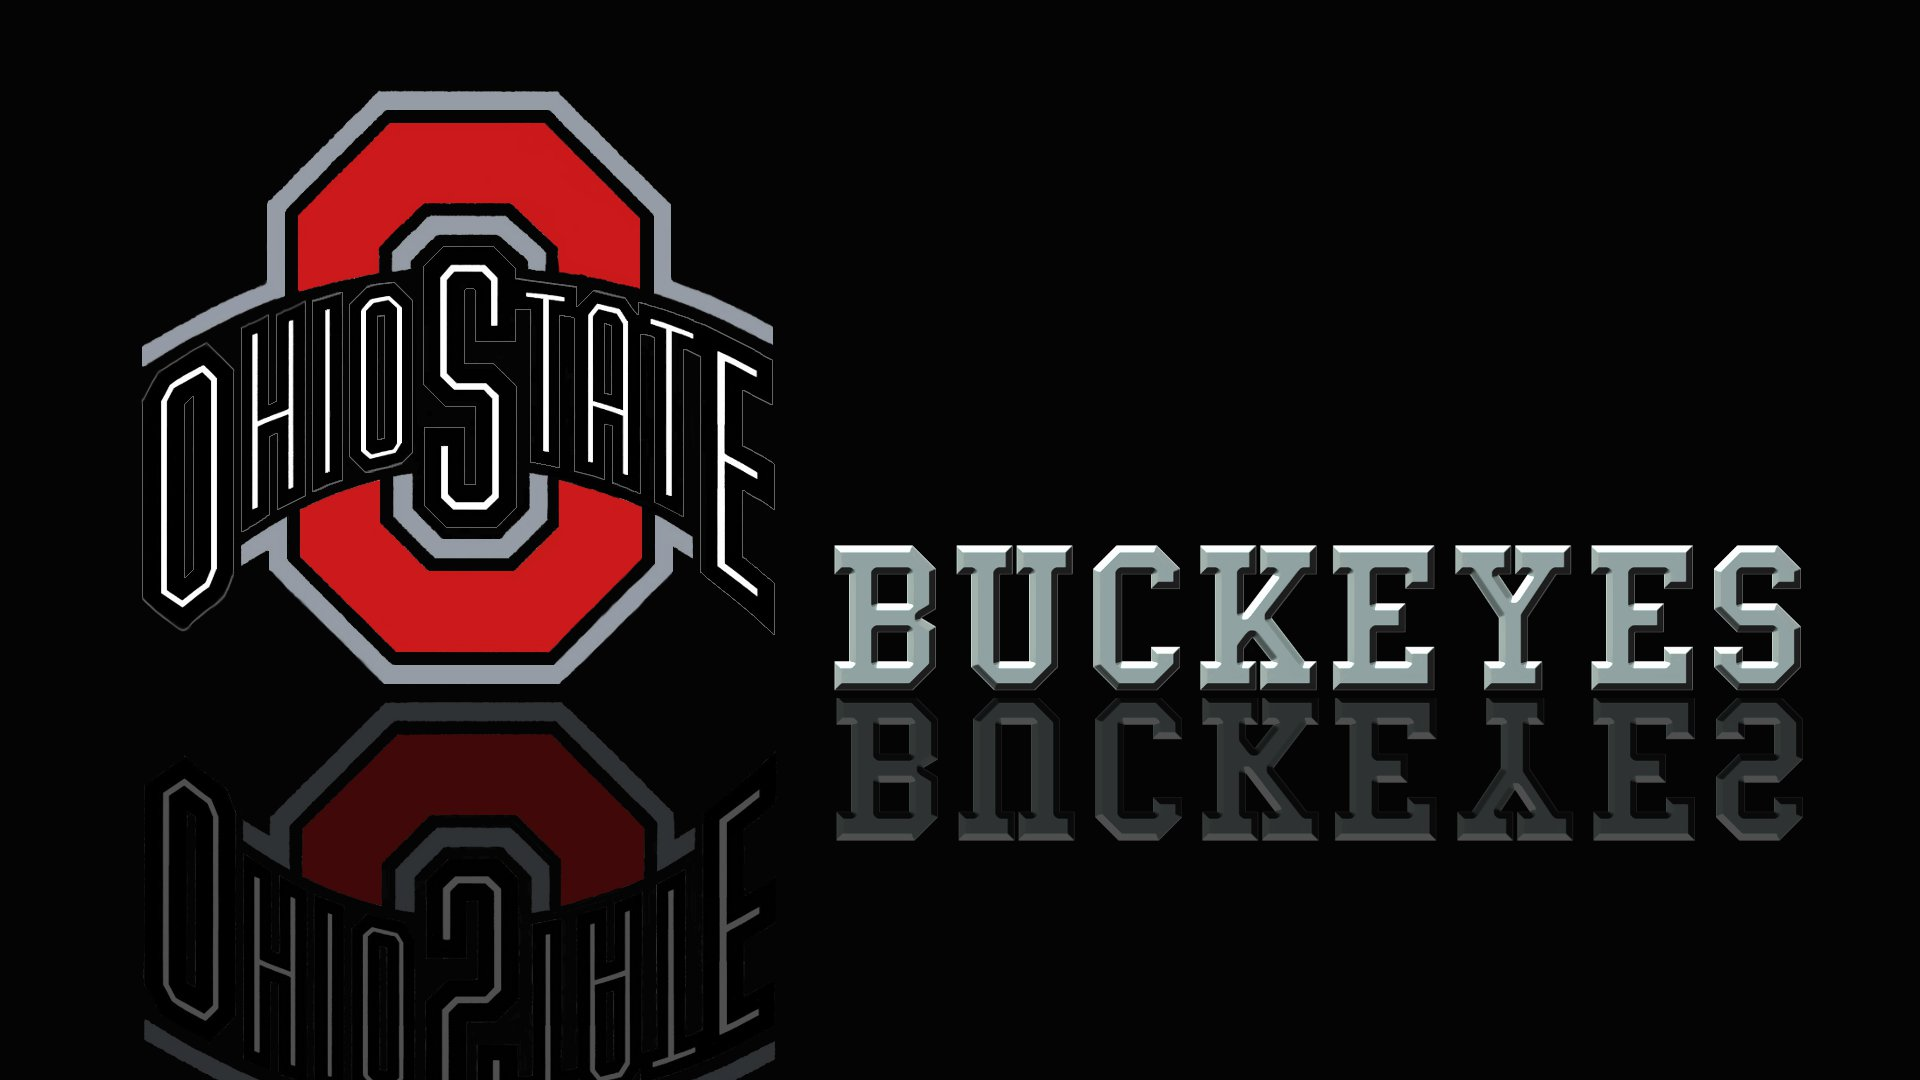 ohio state buckeyes wallpaper wallpapersdb ohio state buckeyes 1920x1080